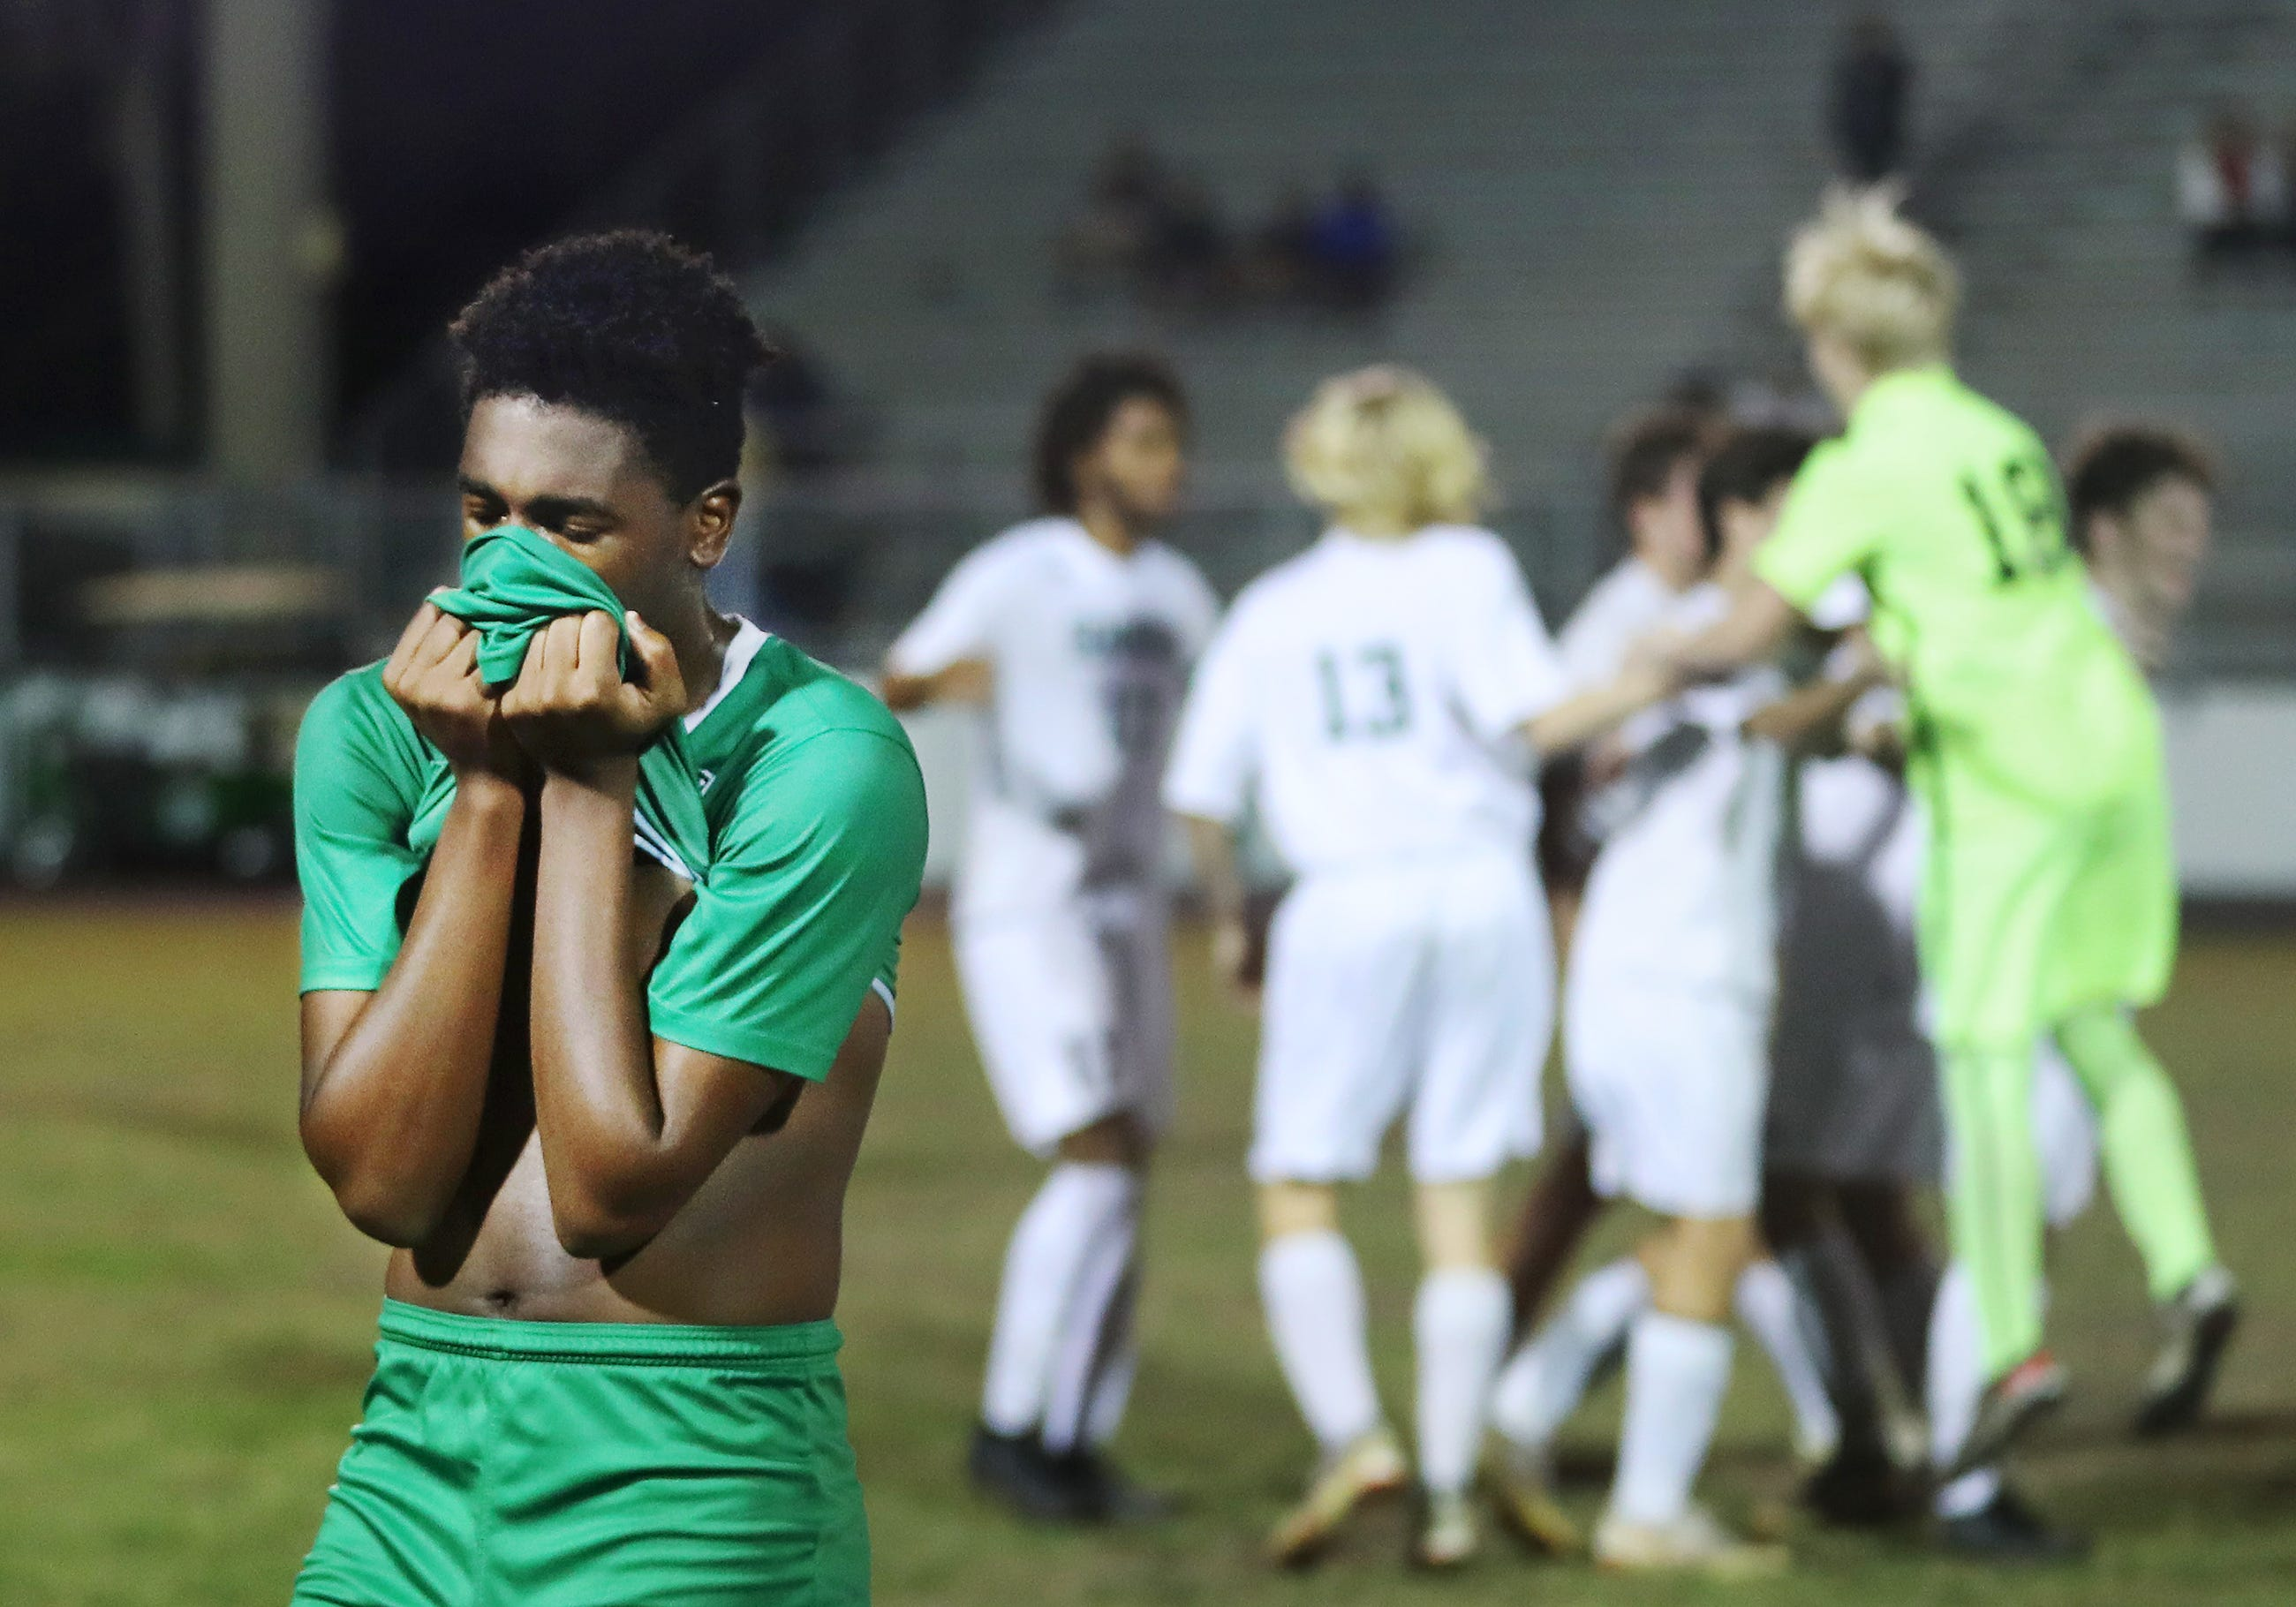 Fort Myers High School soccer player Stefan Fevrier walks off the field as Seminole players celebrate beating Fort Myers 4-3 in the Class 4A regional final recently at Fort Myers.